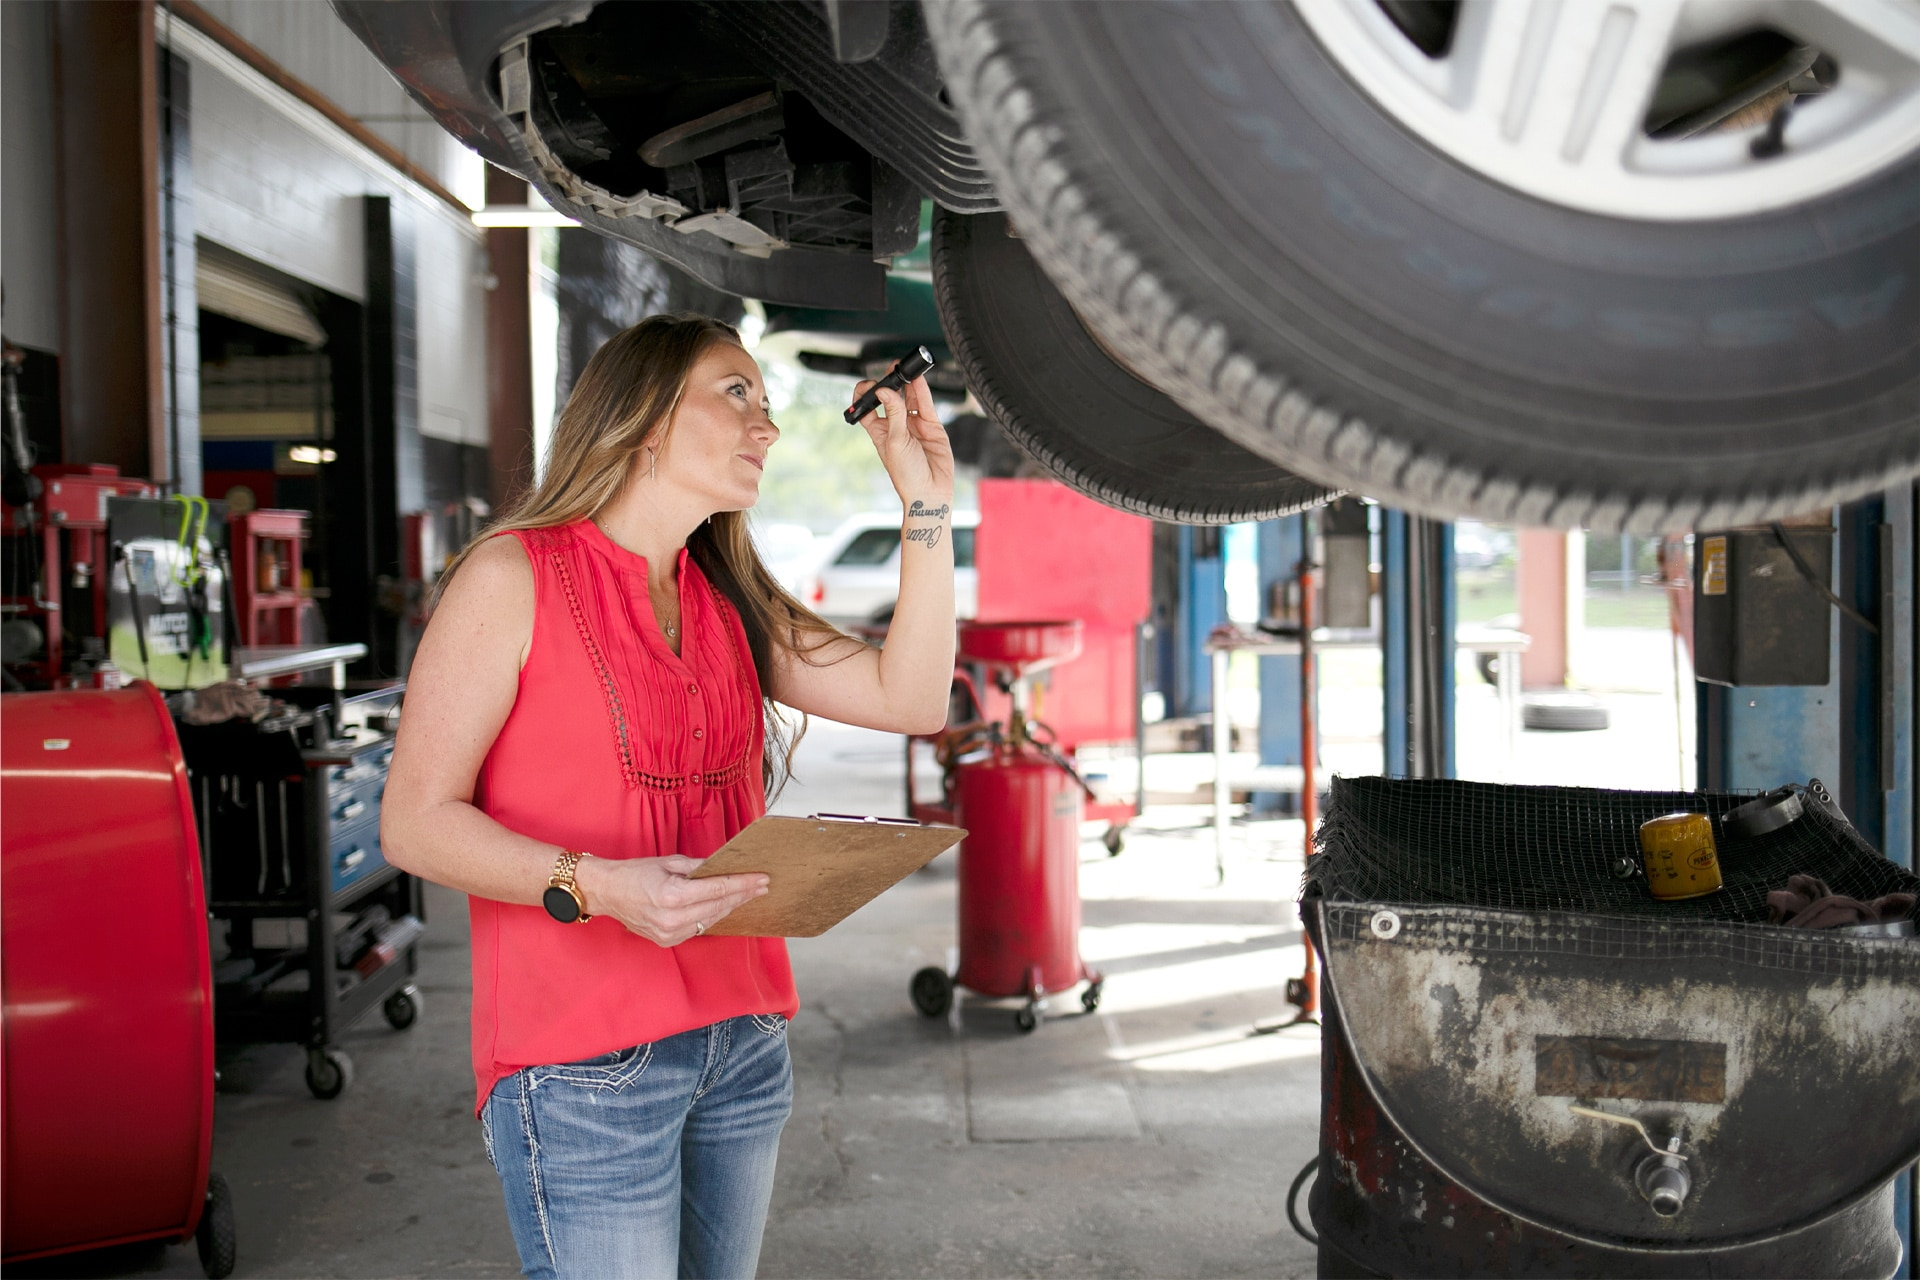 Rachael Wacha at City Auto Repair inspecting a car